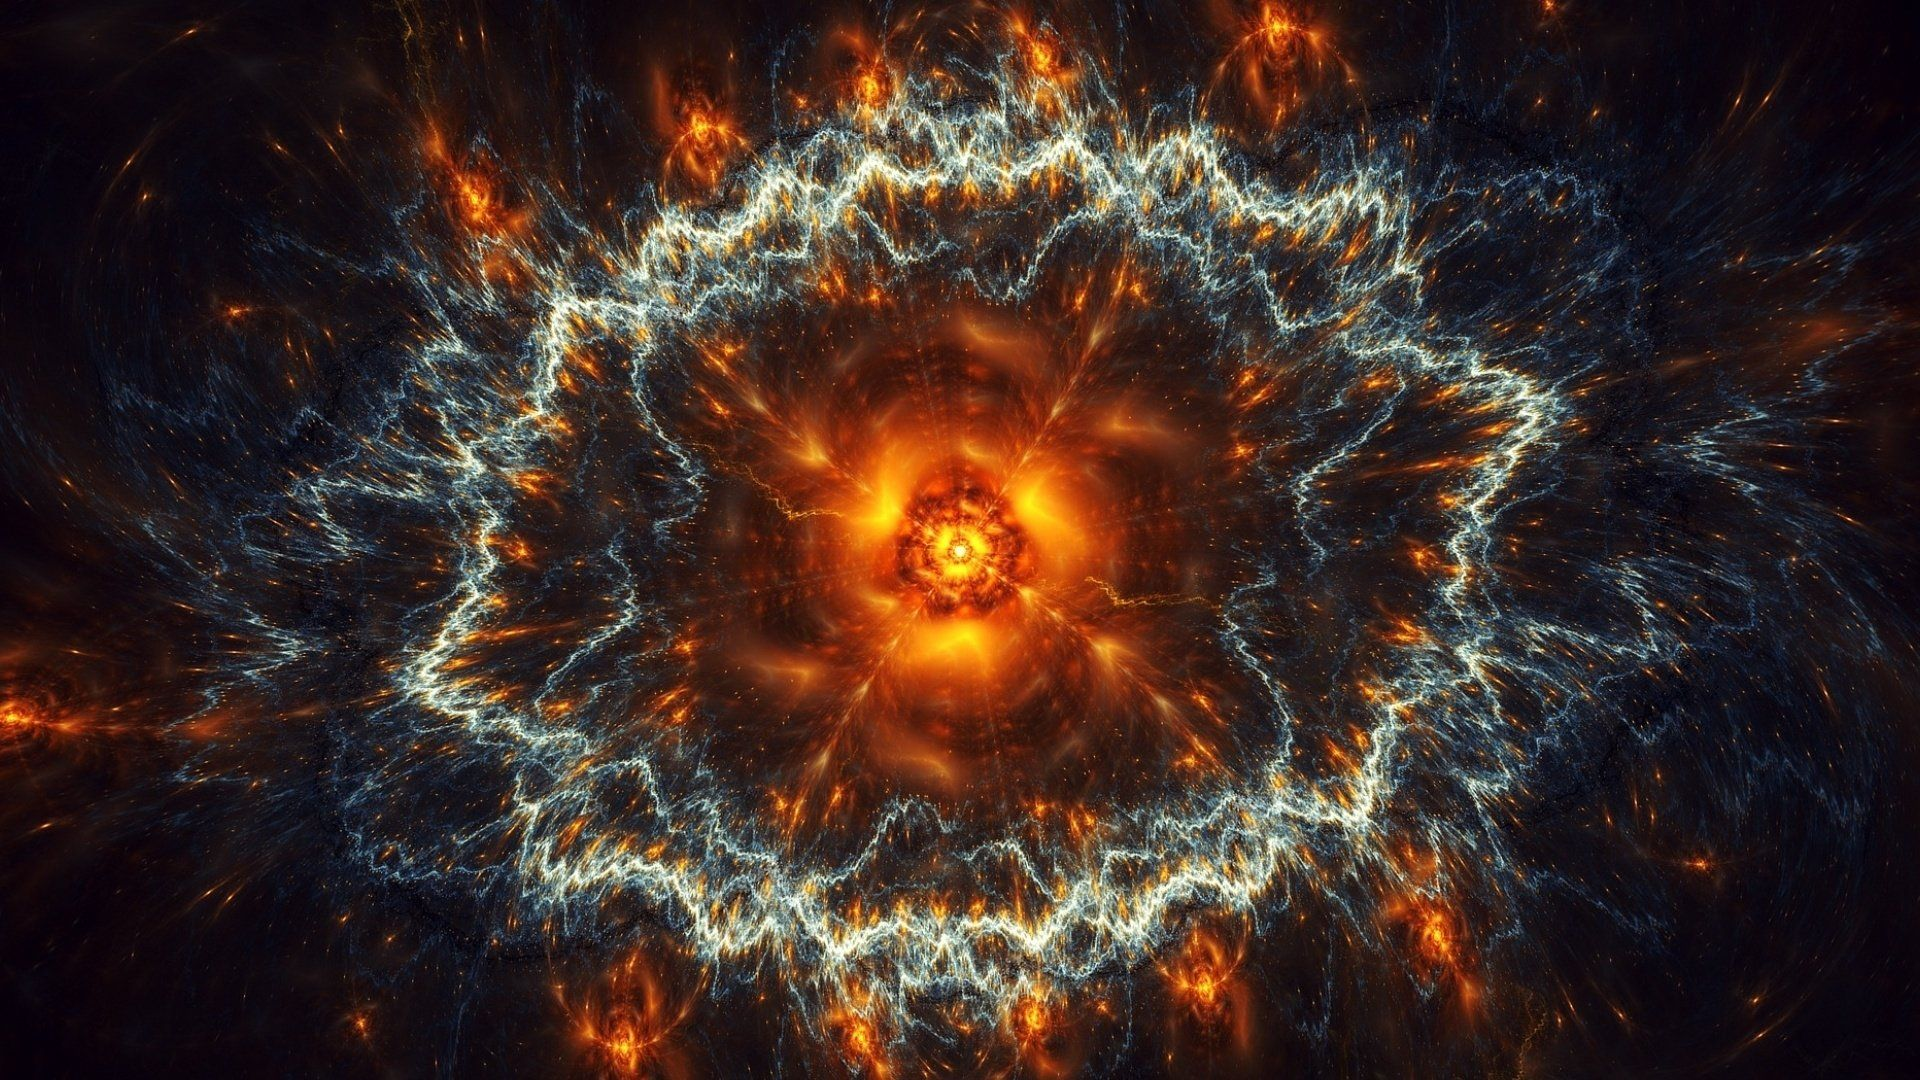 Supernova Wallpapers Supernova Full Hd Wallpaper And Background 1920x1080 In 2020 Nebula Hd Wallpaper Abstract